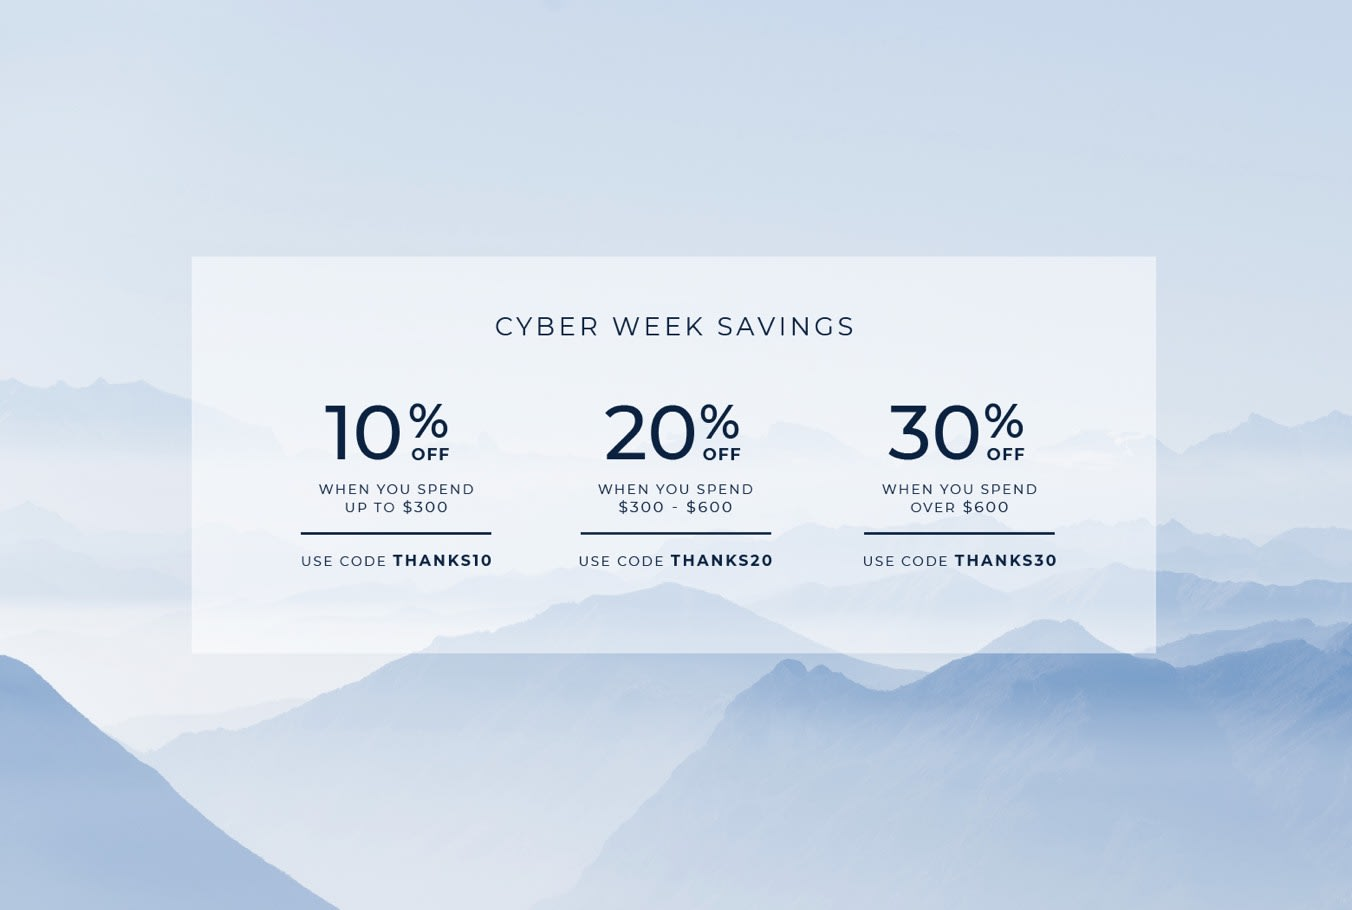 Image of cyber week savings with promo codes tiered for the amount spent.